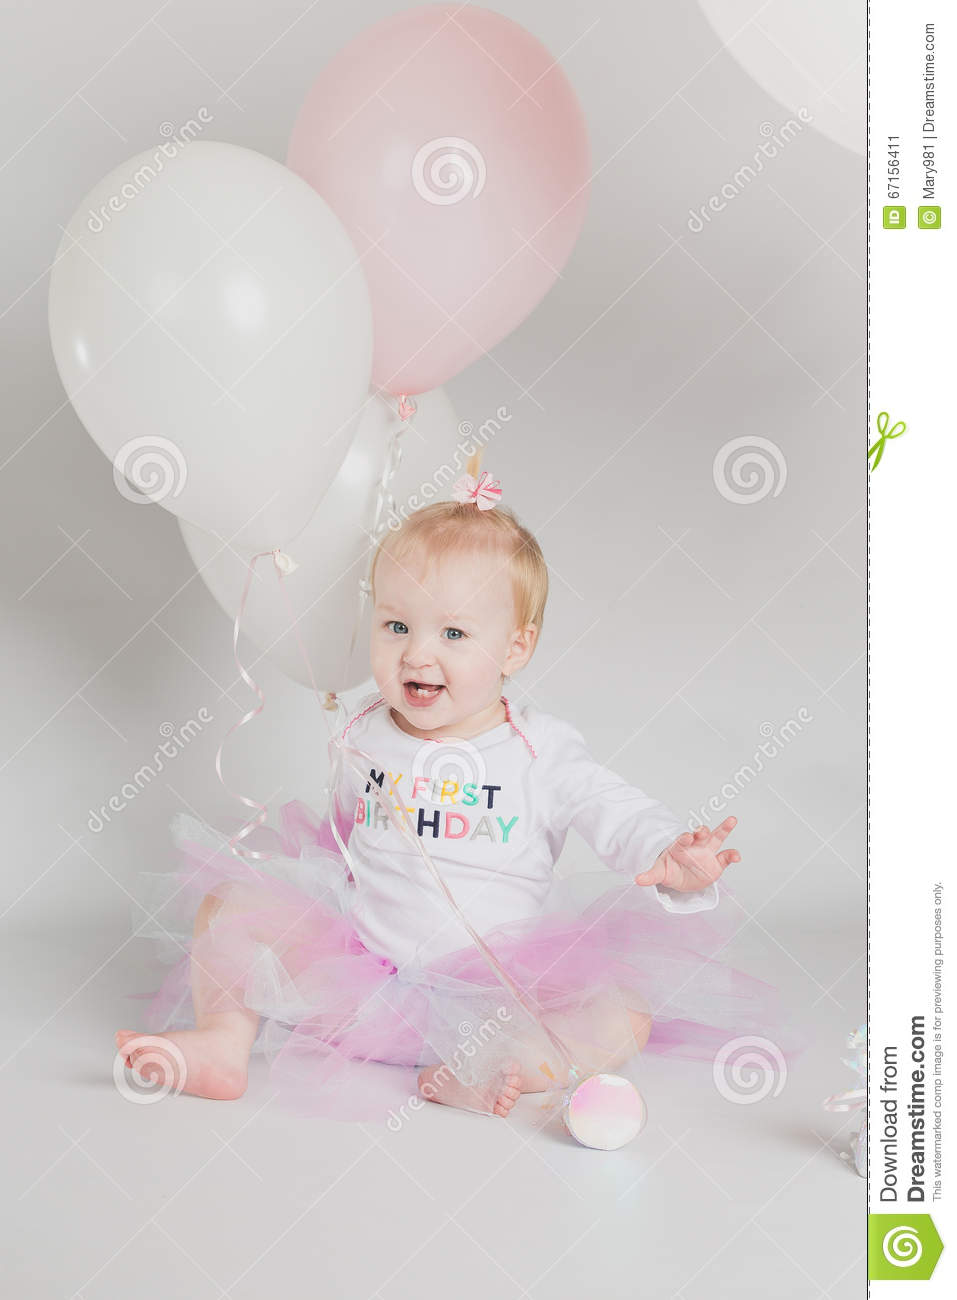 Adorable One Year Old Little Girl Birthday Portrait White Background Smiling With Pink And Balloons